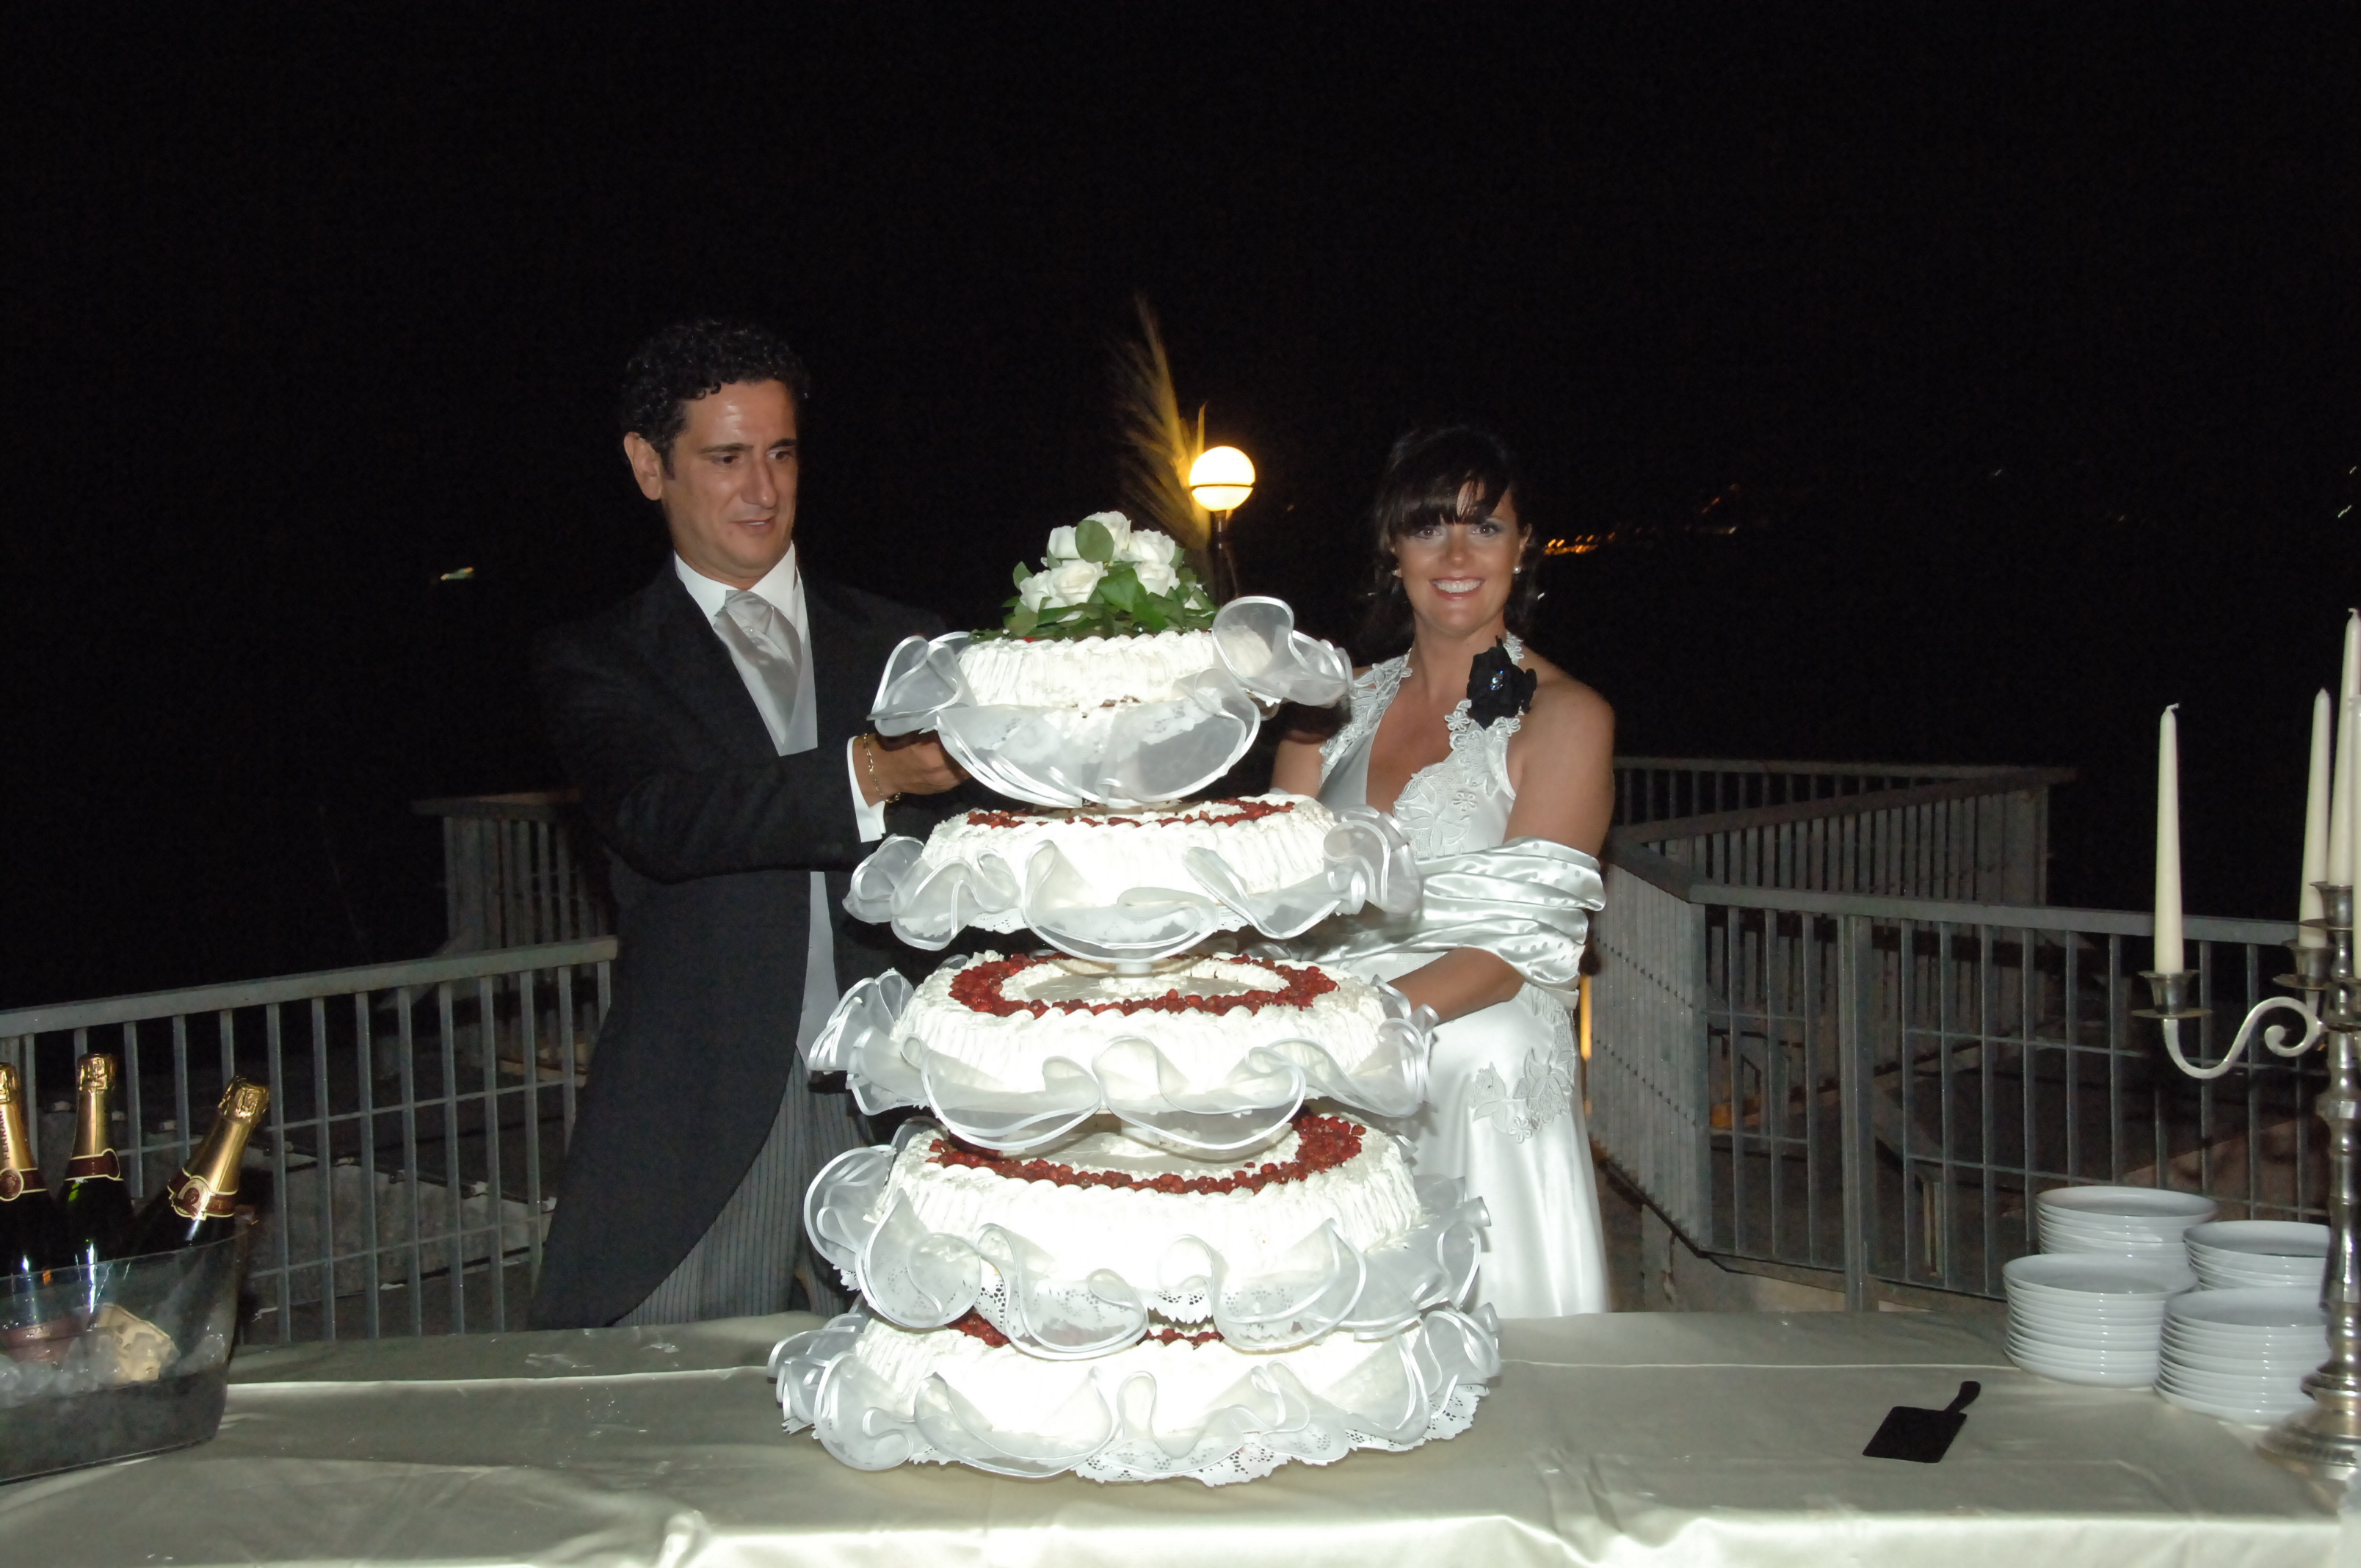 http://www.weddingamalfi.com/wp-content/uploads/Enza-and-Mario-wedding-cake-and-champagne.jpg